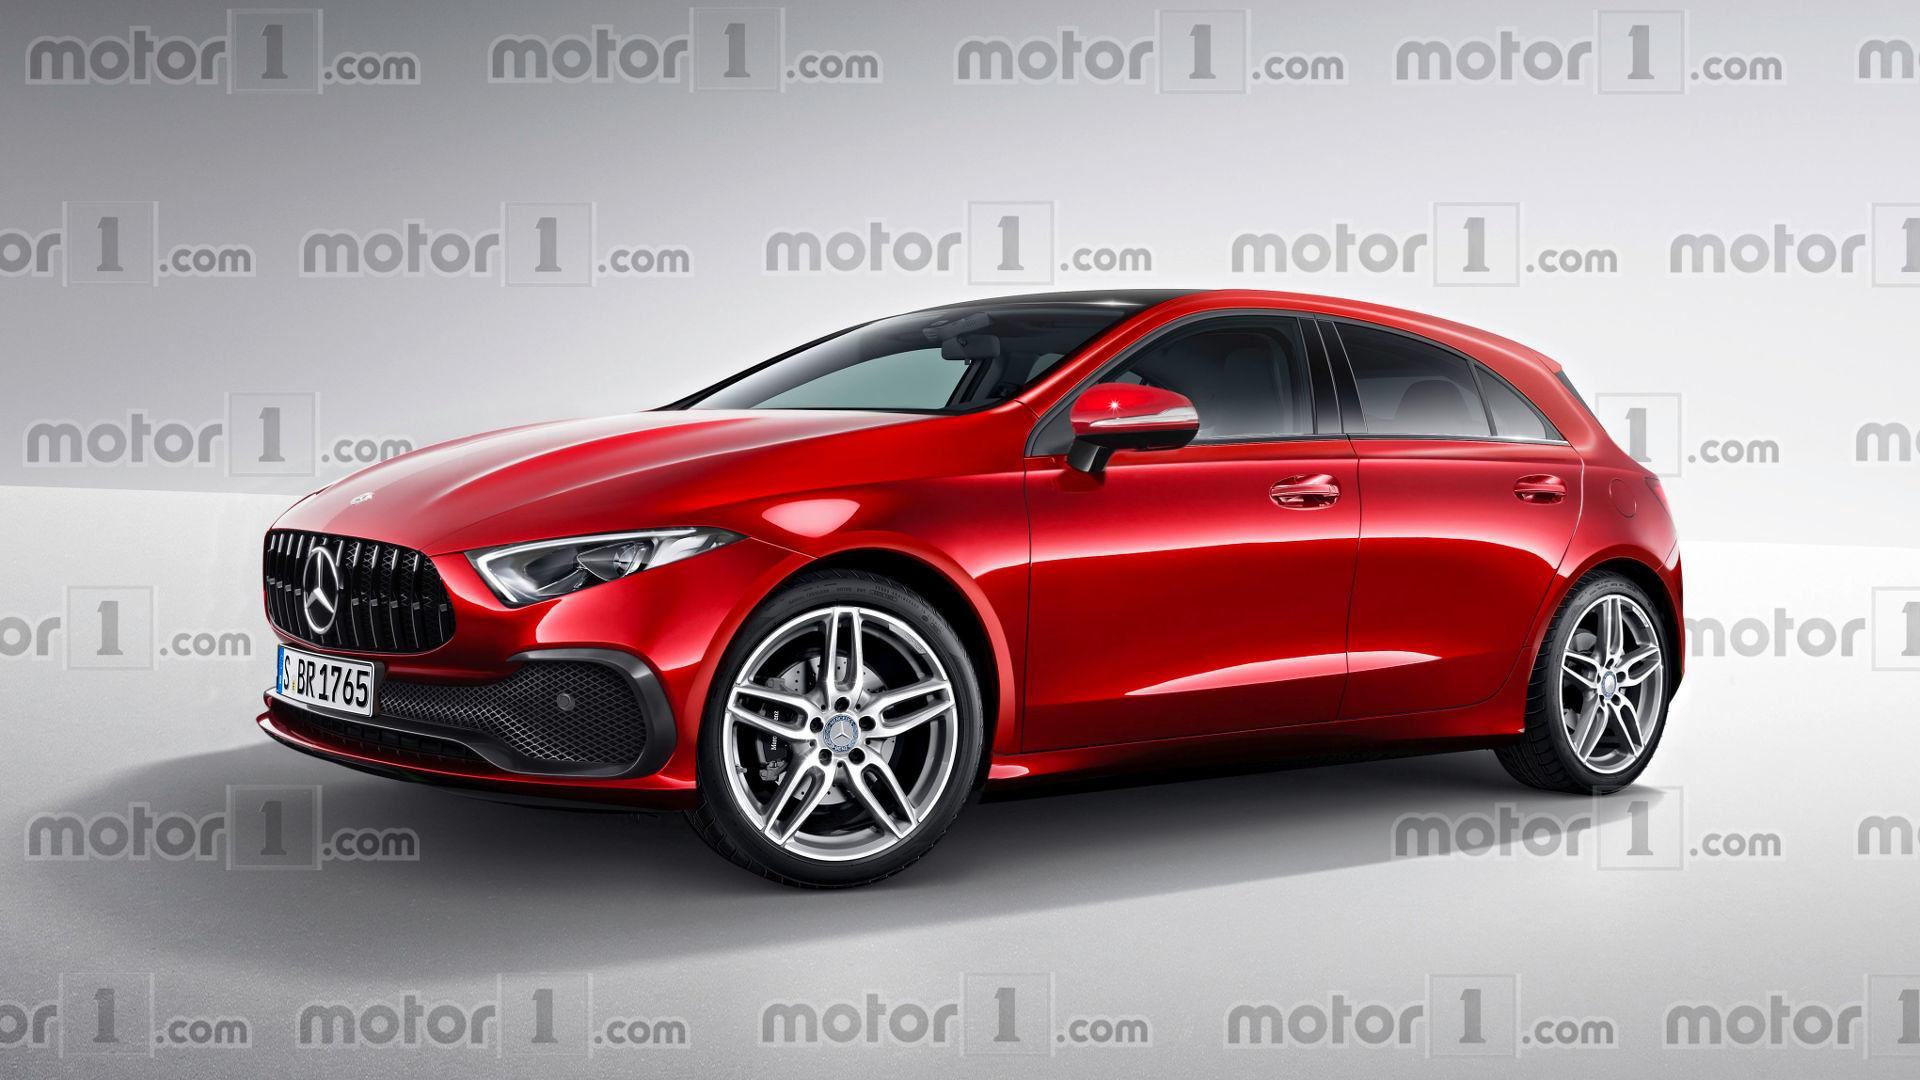 New Mercedes A Class Render Transforms Sedan Concept Into Hatch